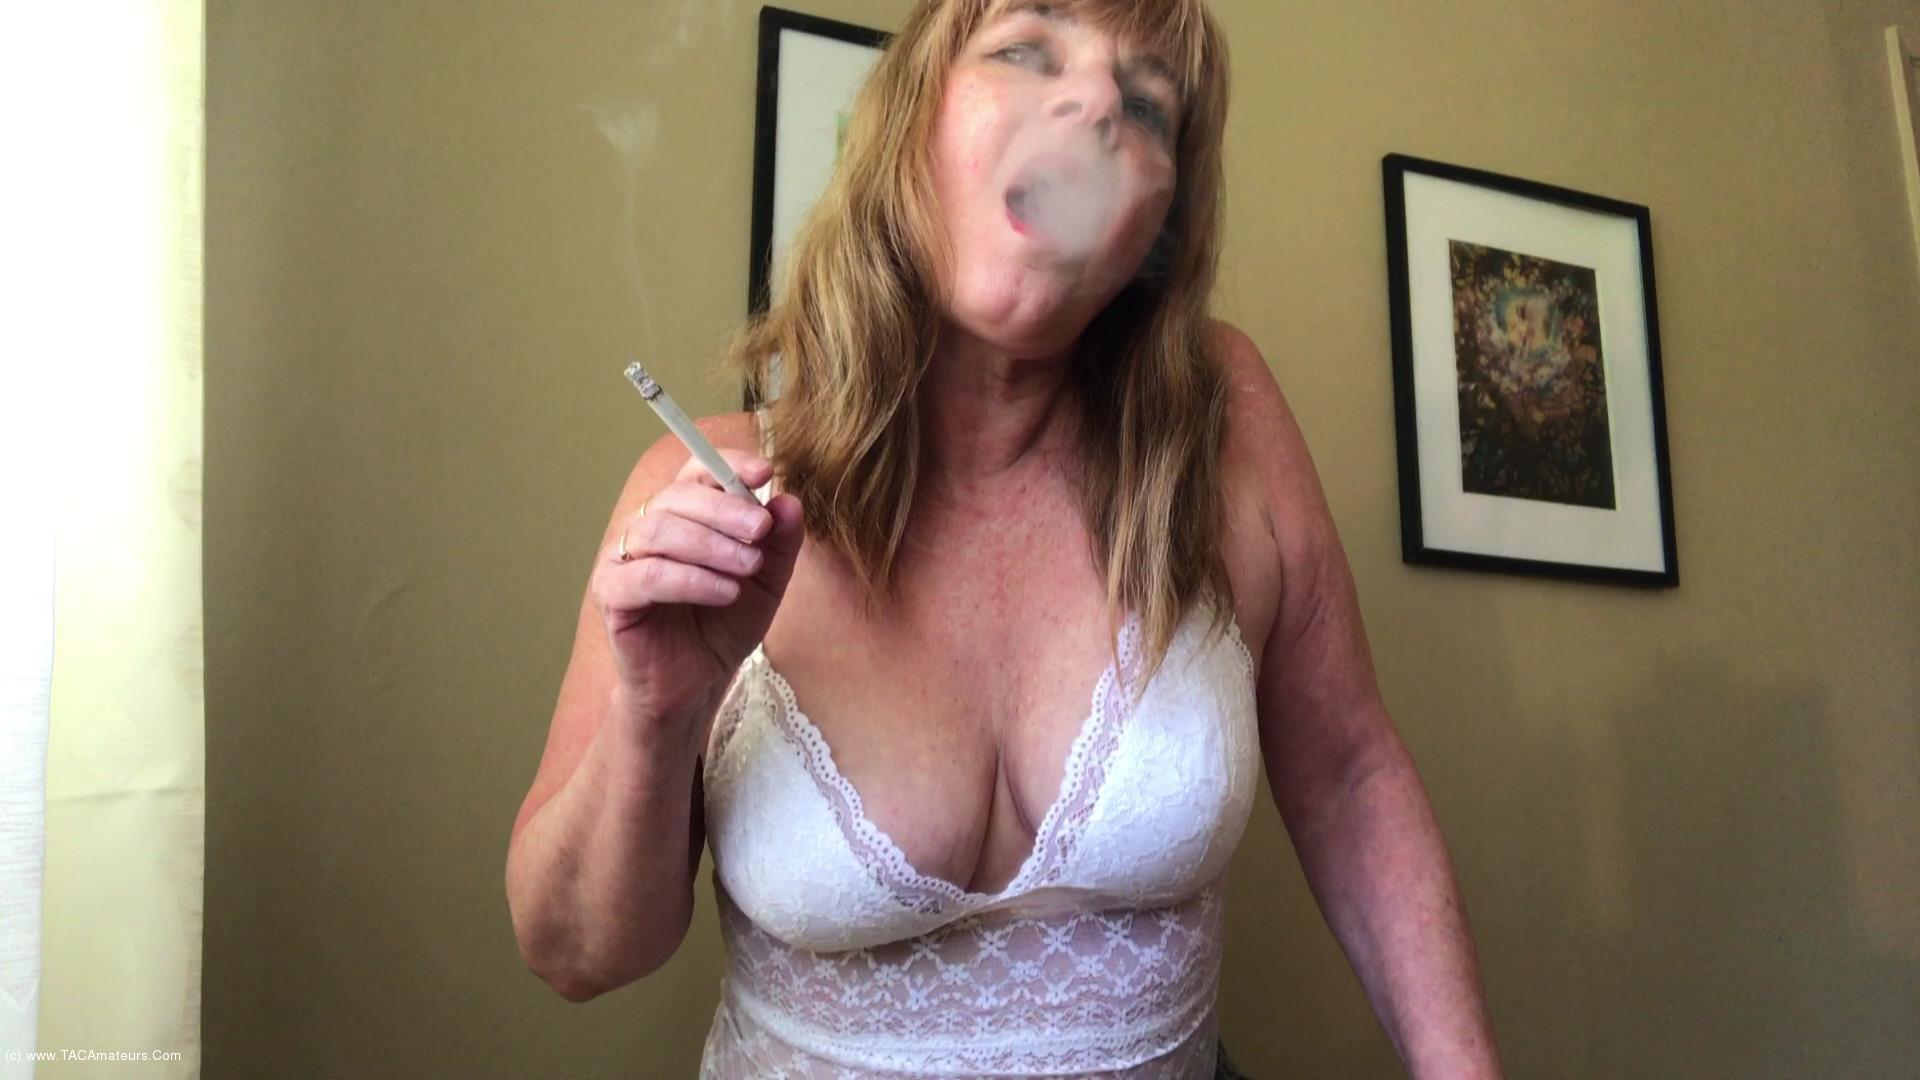 CougarBabeJolee - Smoking Flicking Ash On Your Hard Cock scene 1